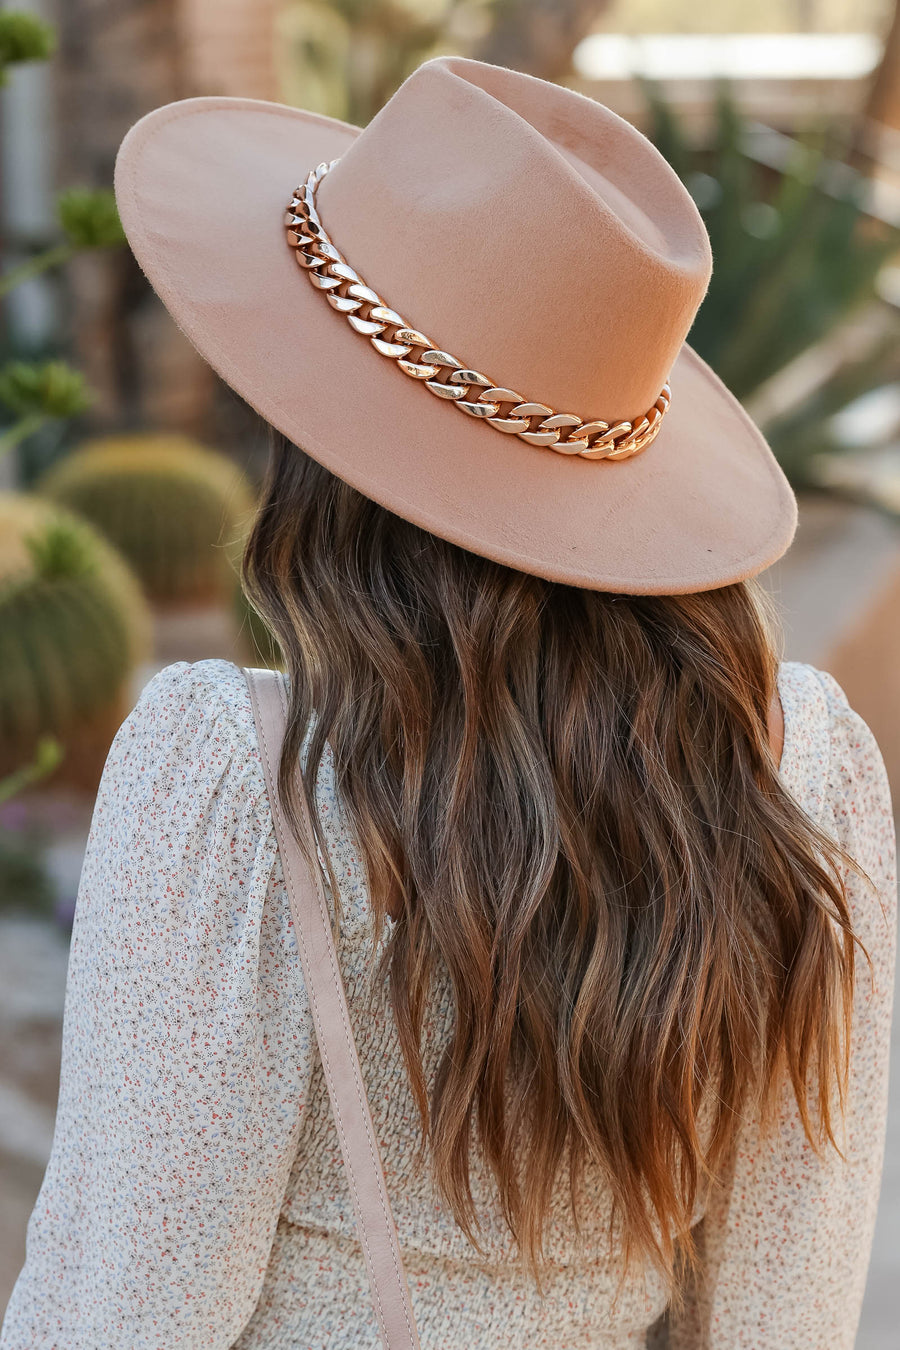 Indio Dreamer Wide Brim Hat - Tan closet candy women's trendy western hat with bulky chain detail 1